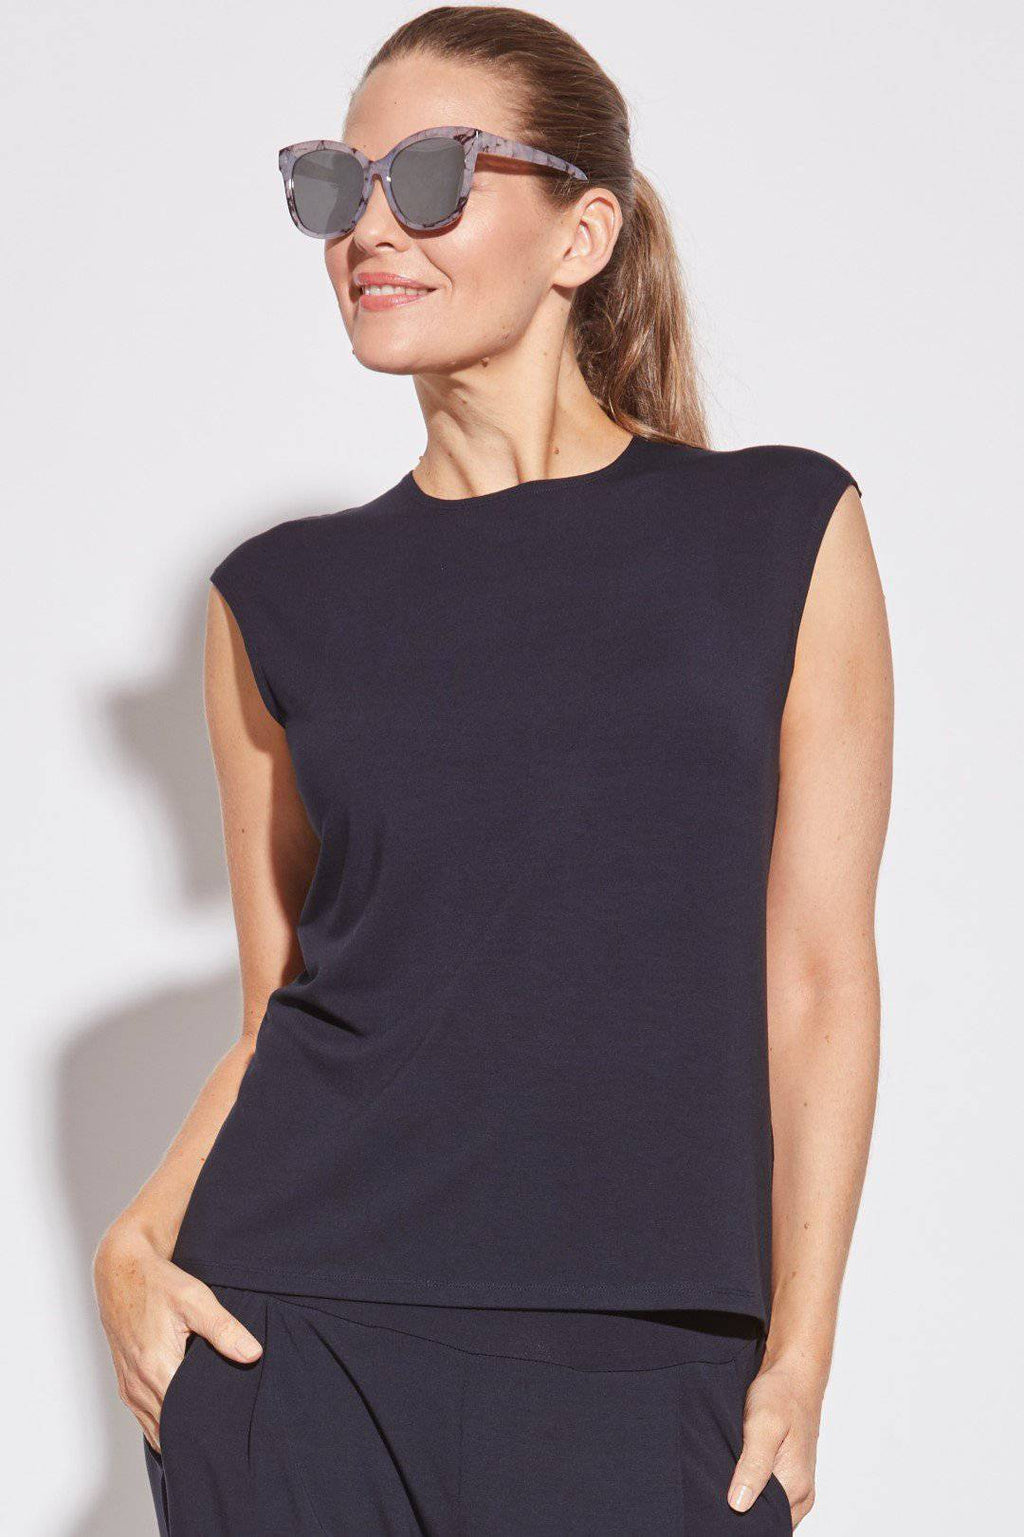 PAULA RYAN ESSENTIALS Easy Fit Cap Sleeve Crew Neck Top - MicroModal - Top - Paula Ryan Essentials - Paula Ryan